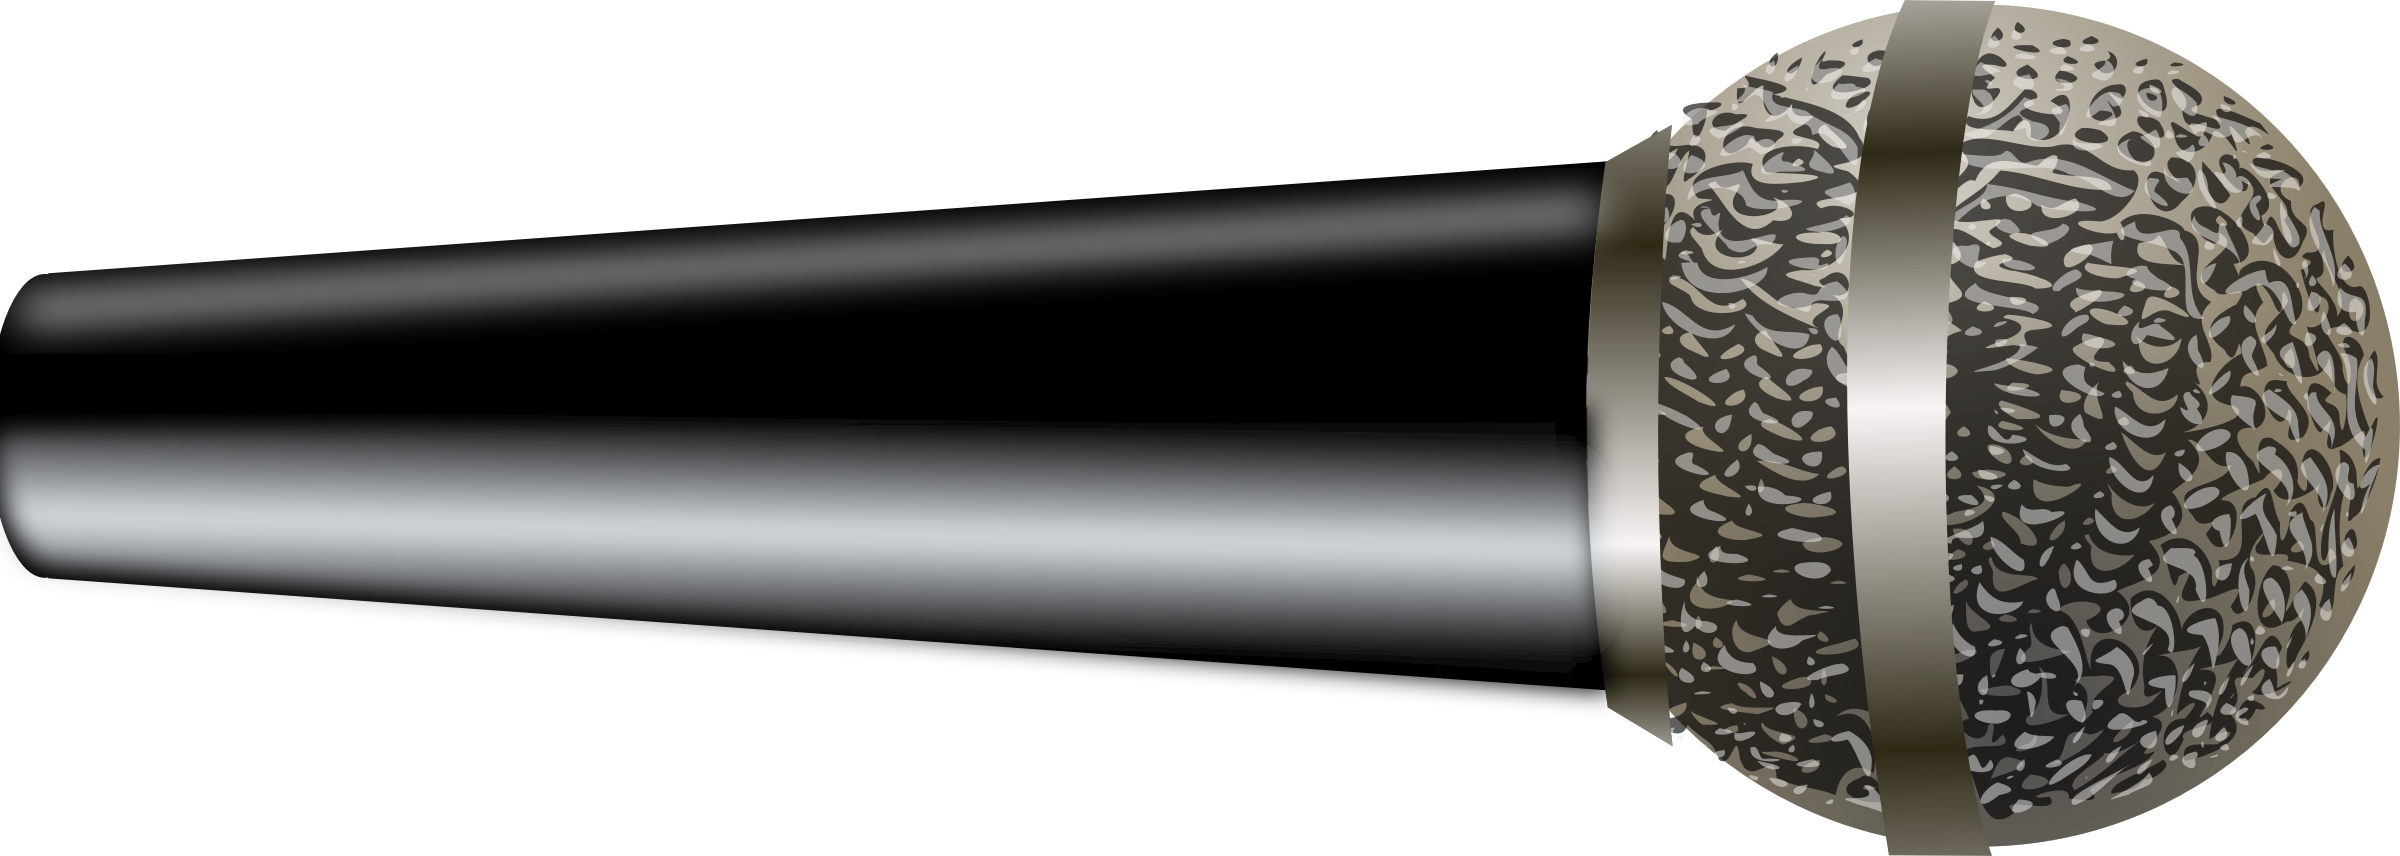 Microphone Png image #20000